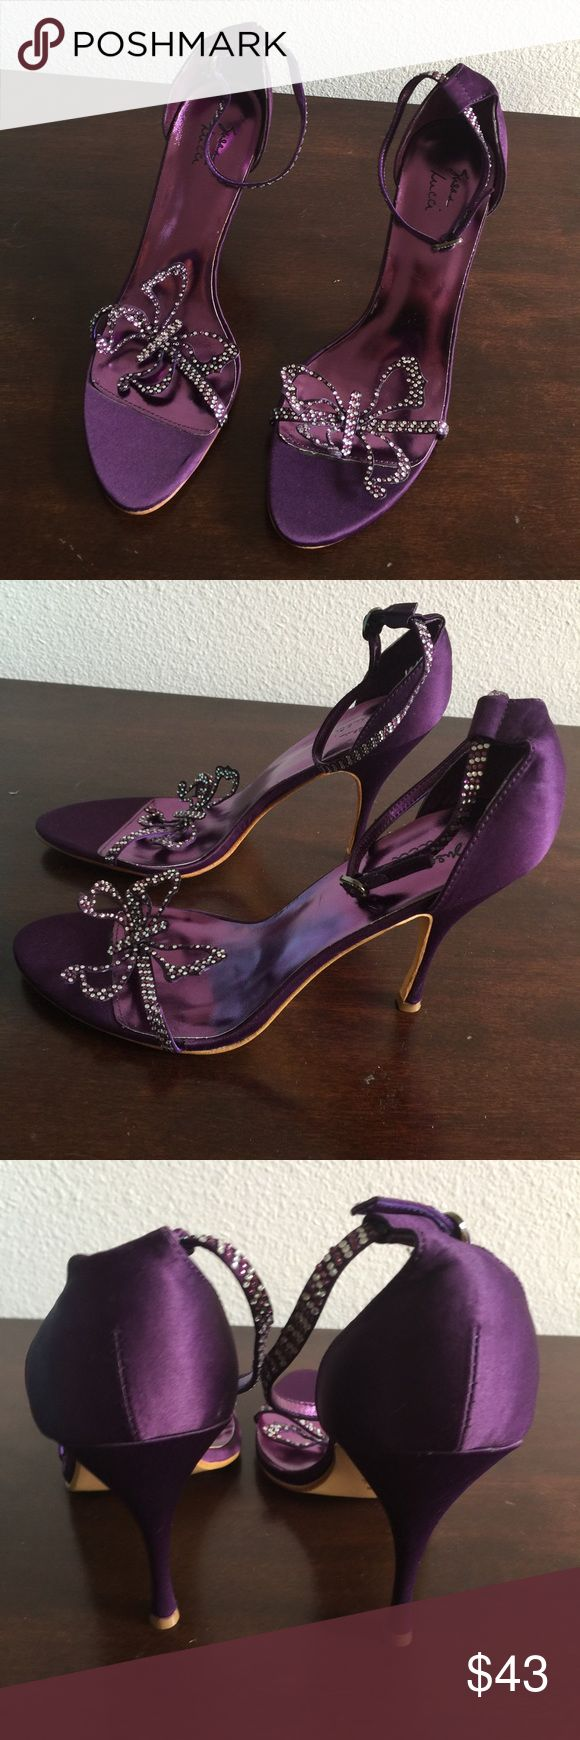 HEELS 👠 👠👠 BEAUTIFUL NEVER WORN NEW BUTTERFLY 🦋 🦋🦋 SEQUINS SUSAN LUCCI Shoes Heels